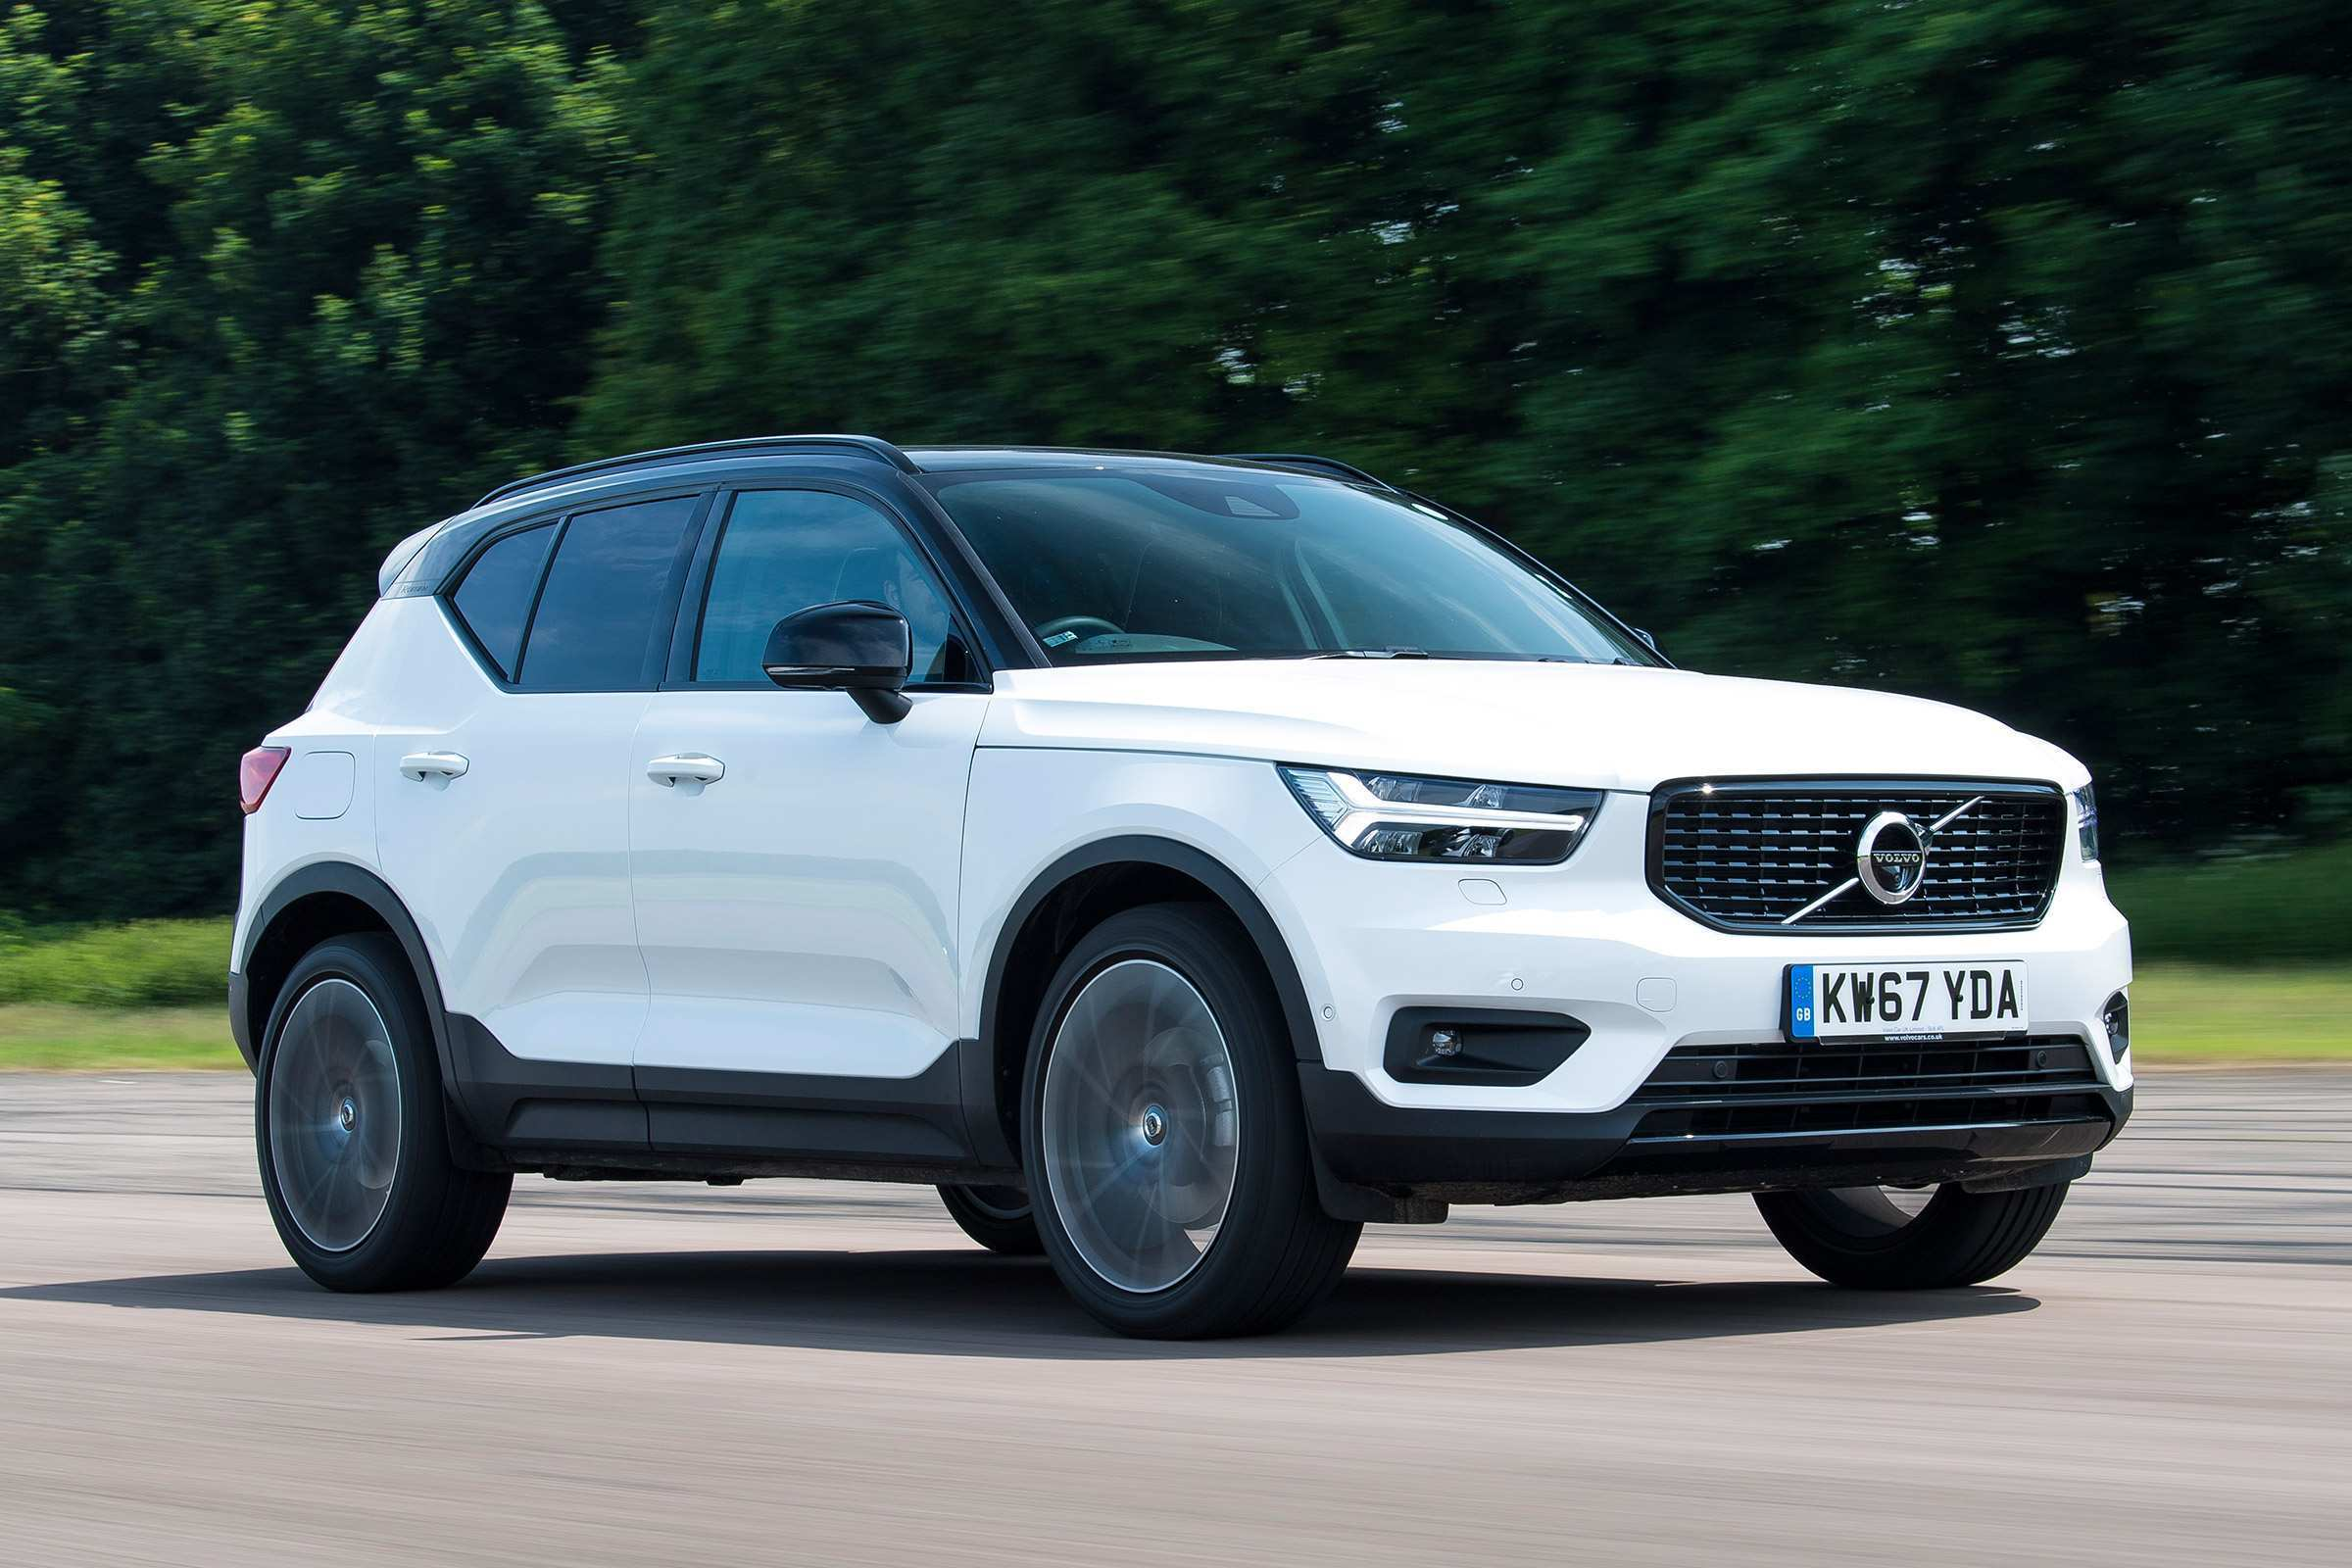 83 The Best 2019 Volvo Xc40 Owners Manual Style